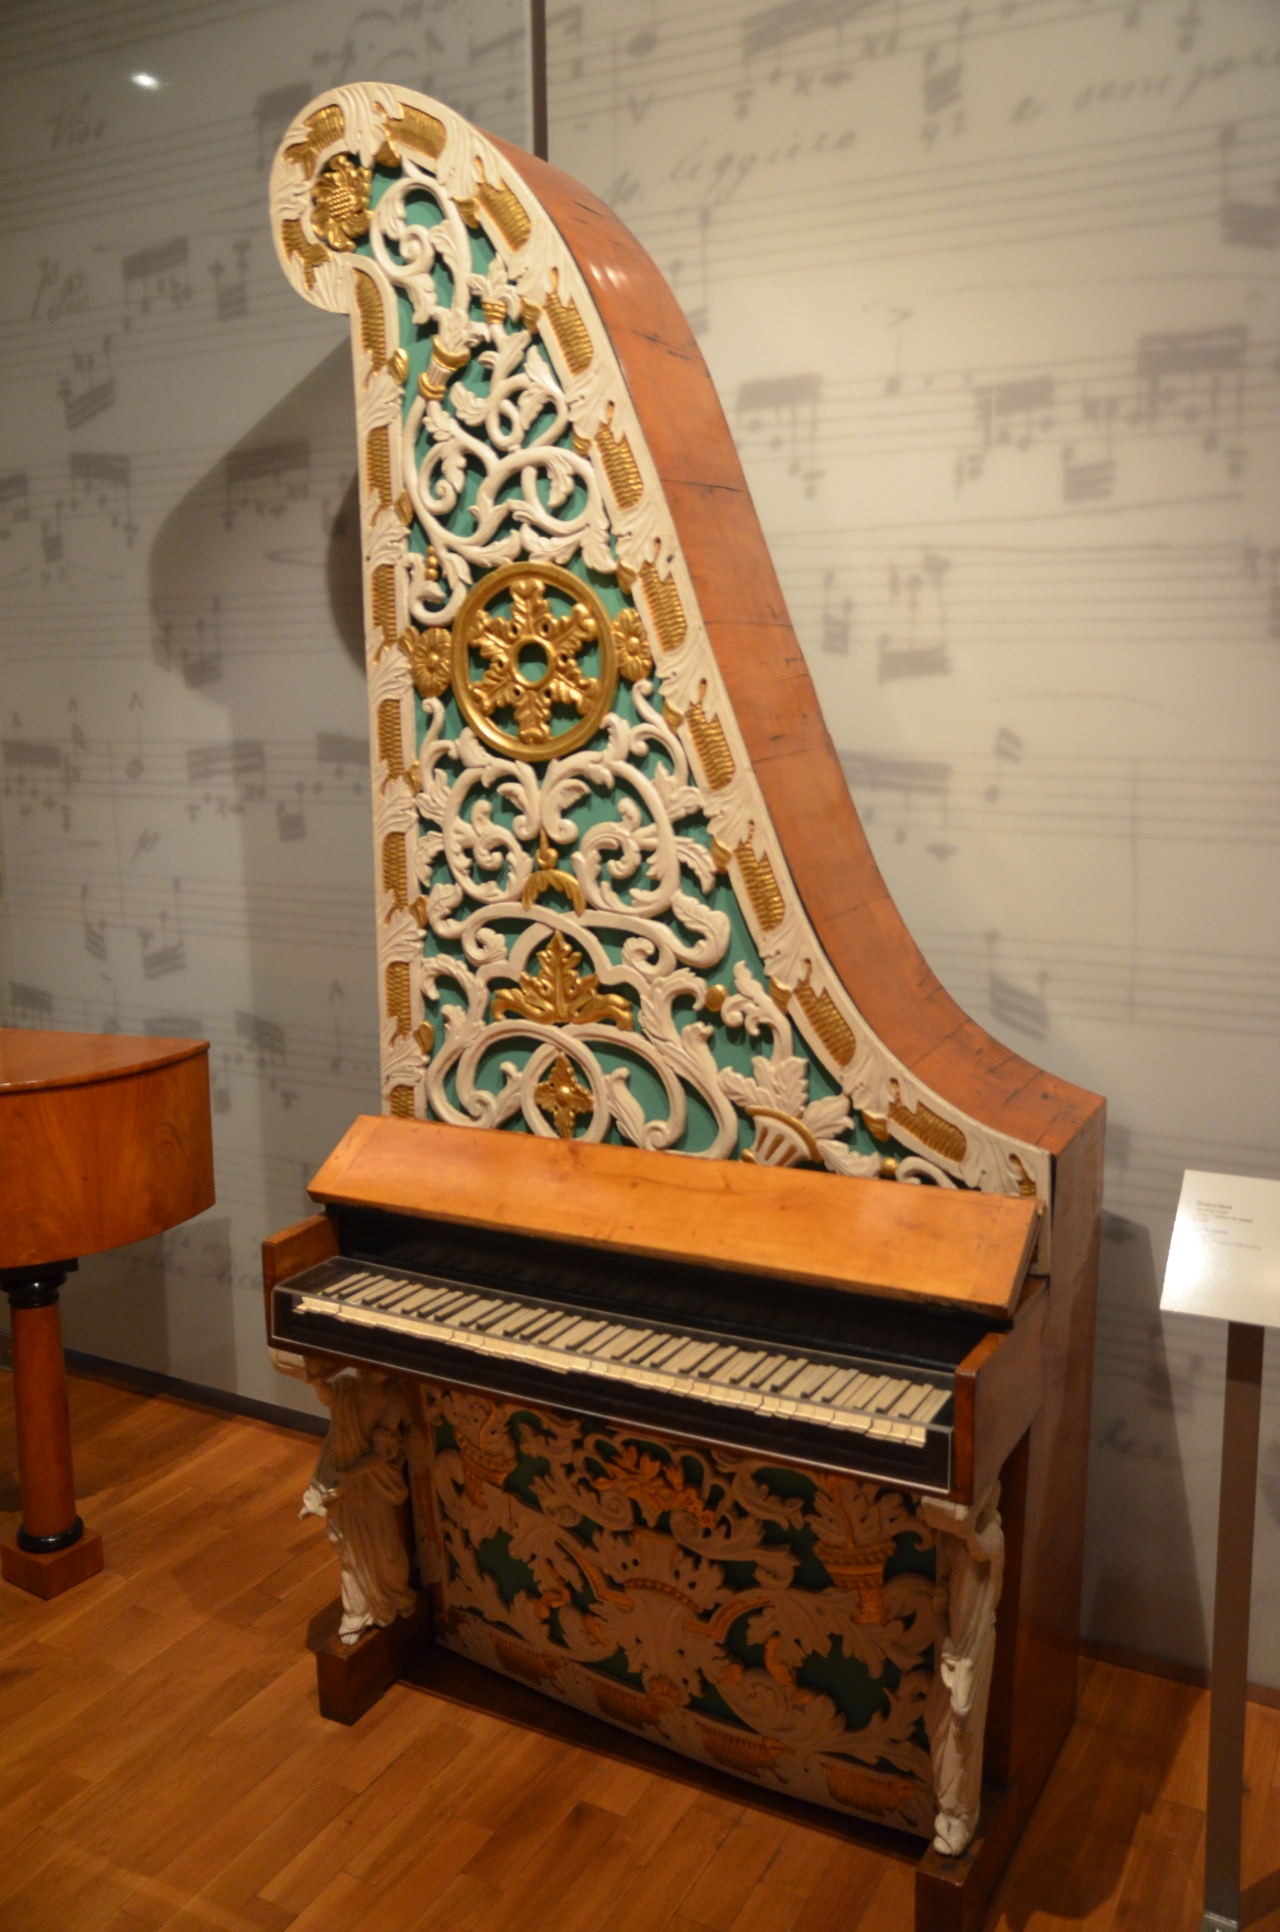 piano-girafe-prague-museum.jpg